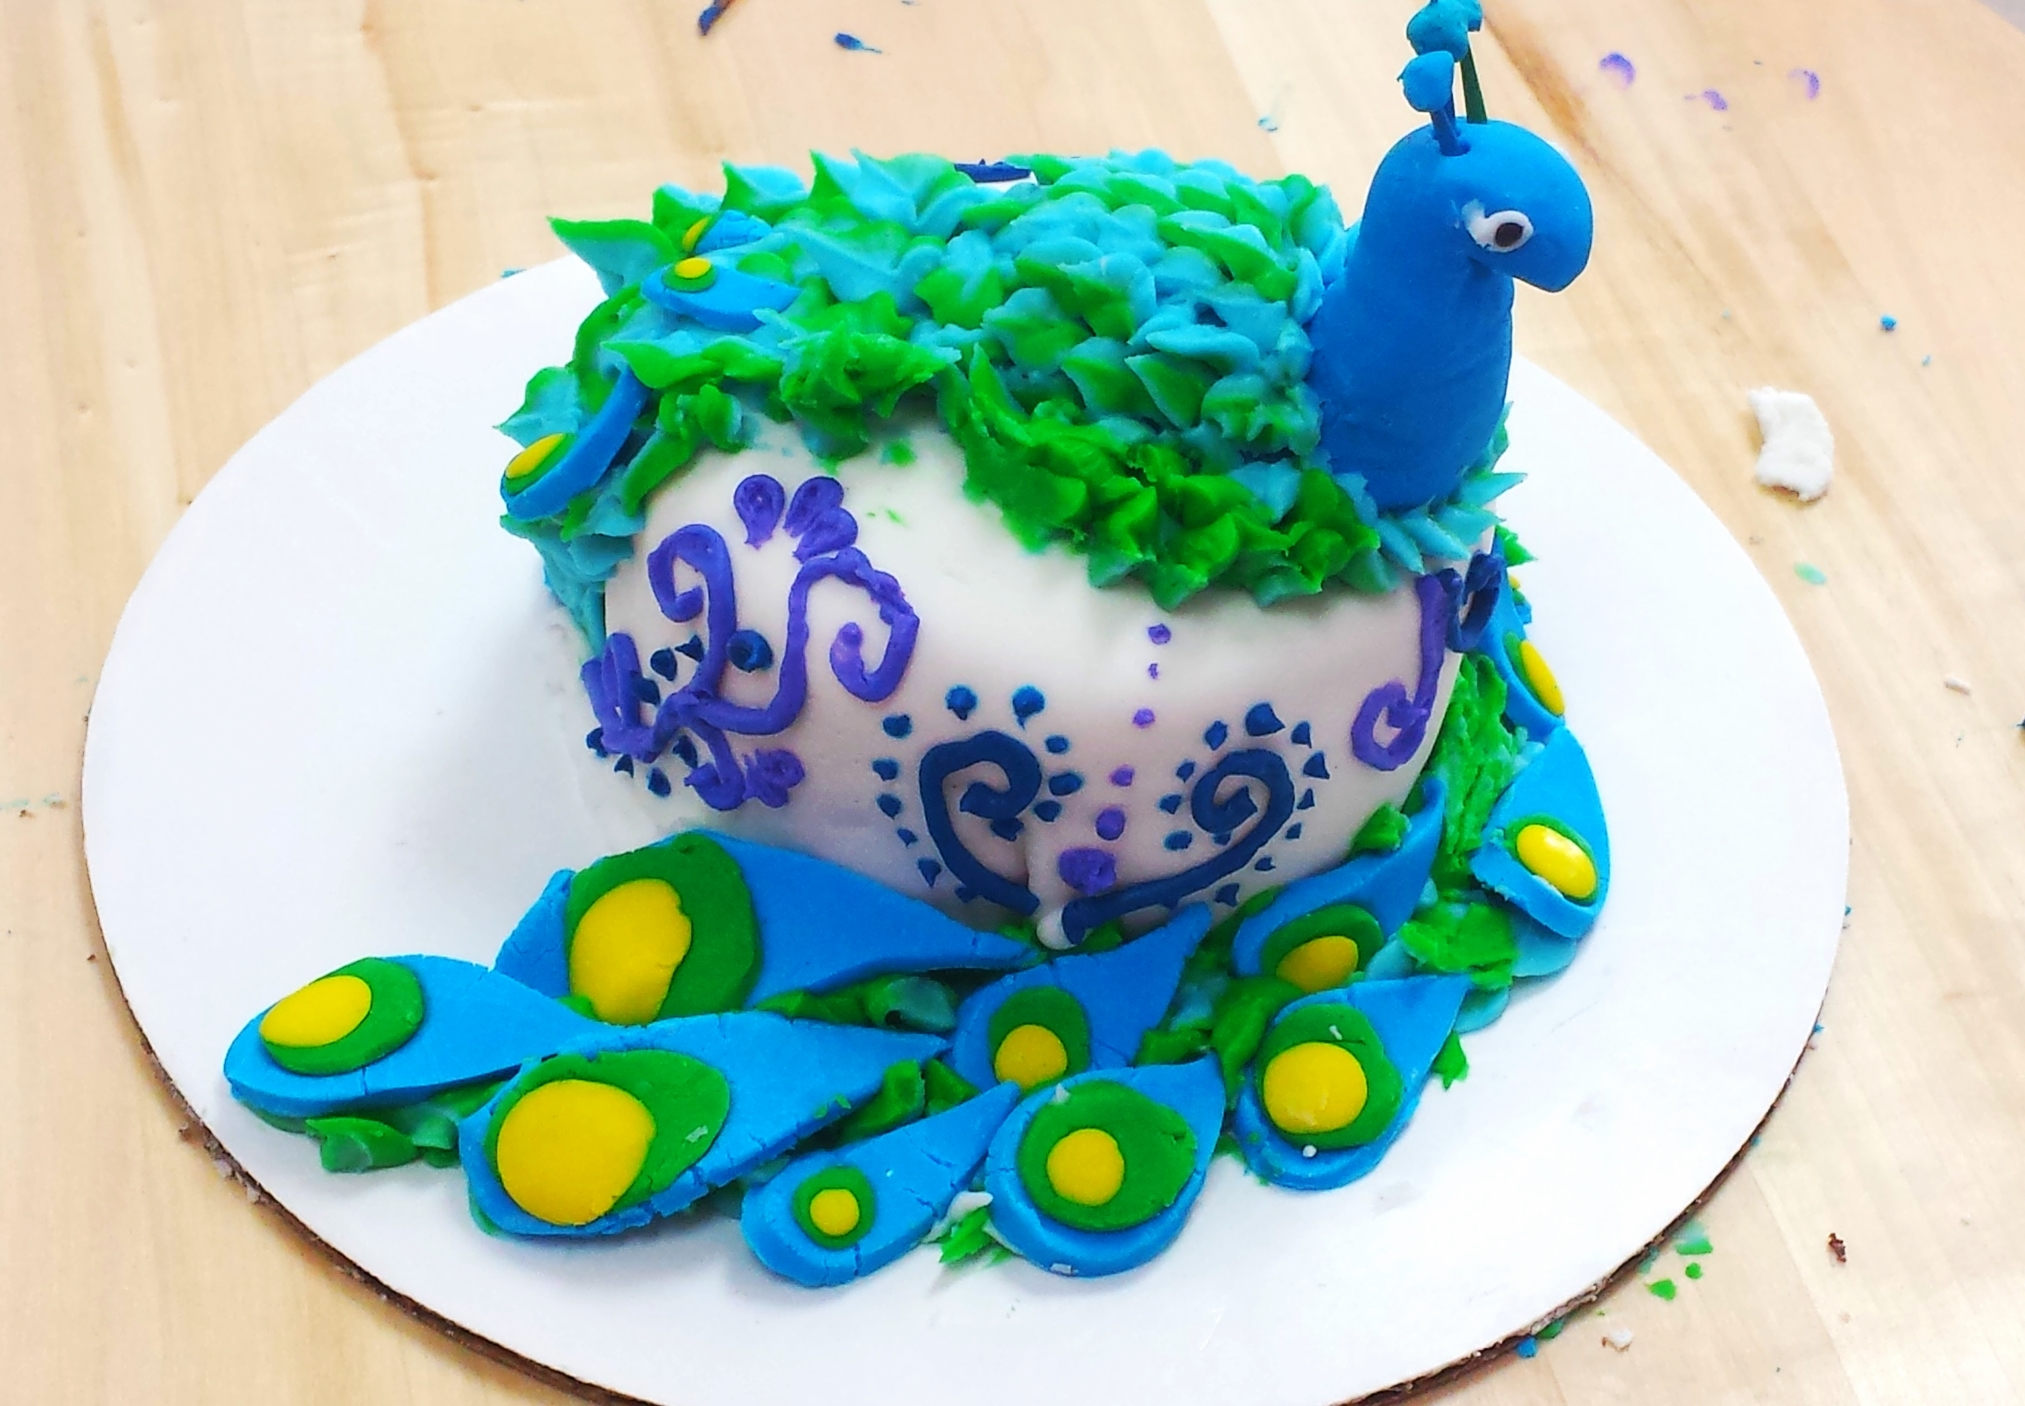 This peacock cake was created by a 14 year old girl on the 4th day of her week long  SUMMER CAMP.